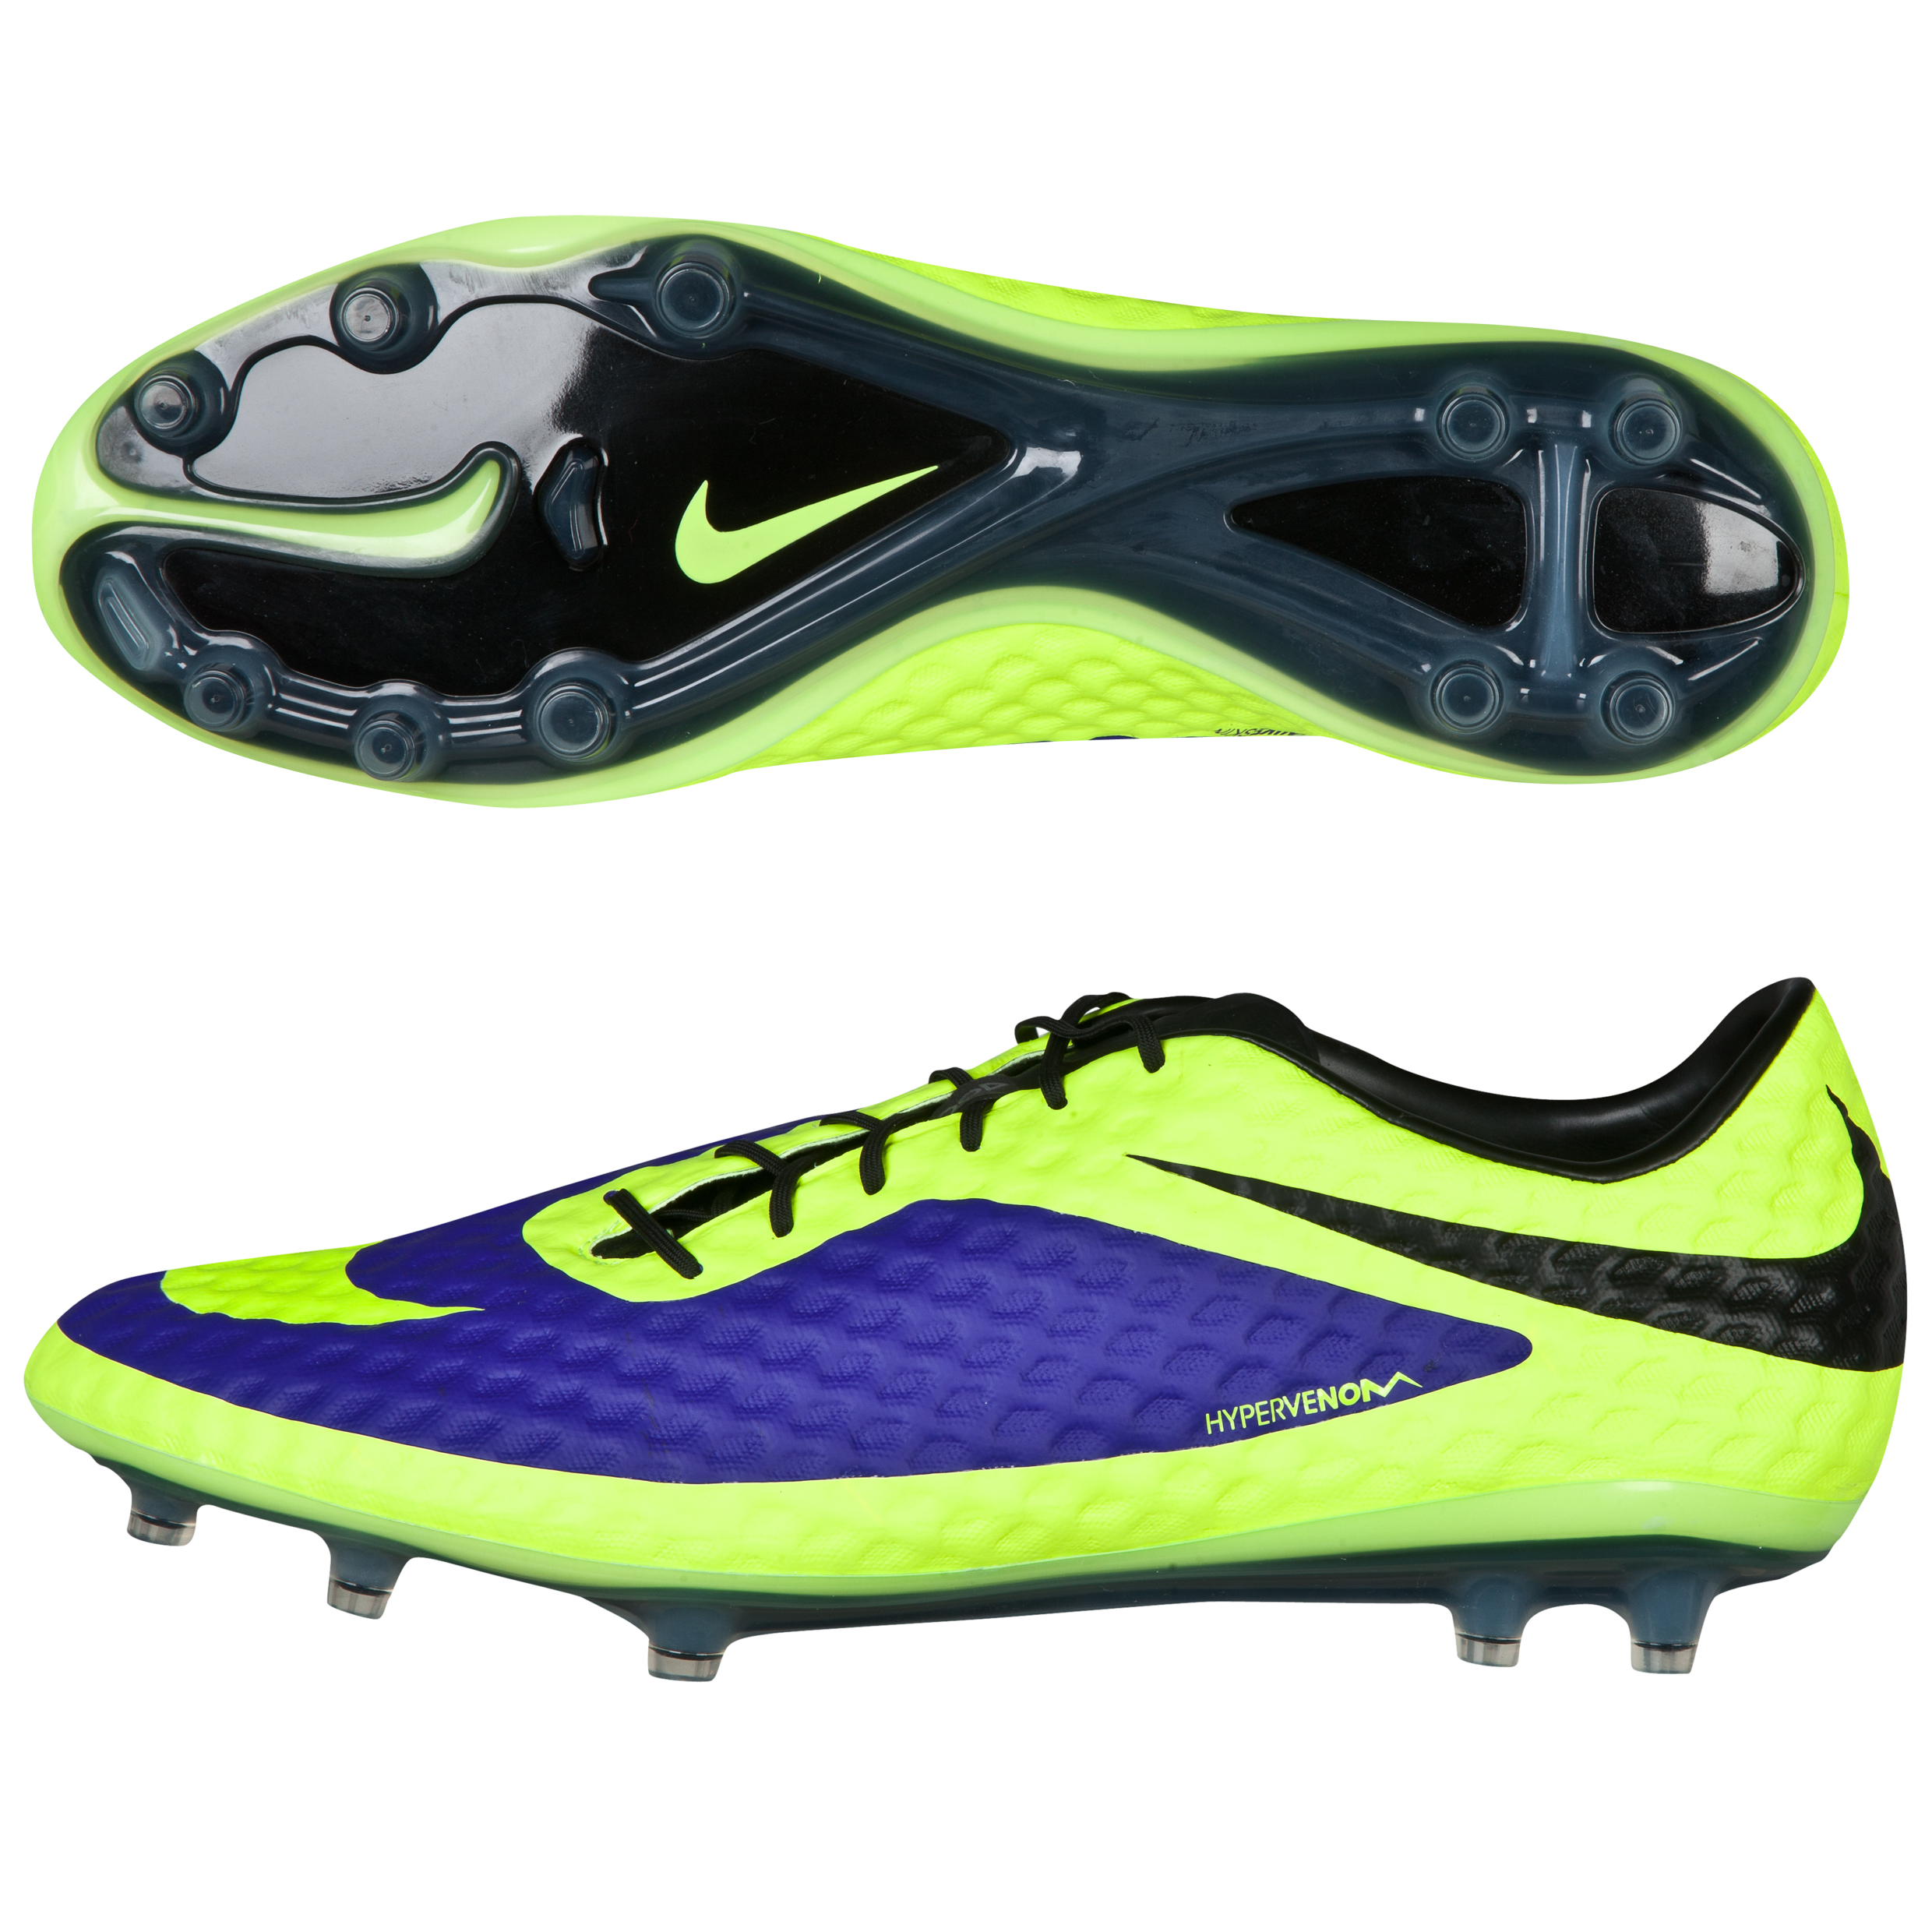 Nike Hypervenom Phantom Firm Ground Football Boots - Electro Purple/Volt/Black Purple